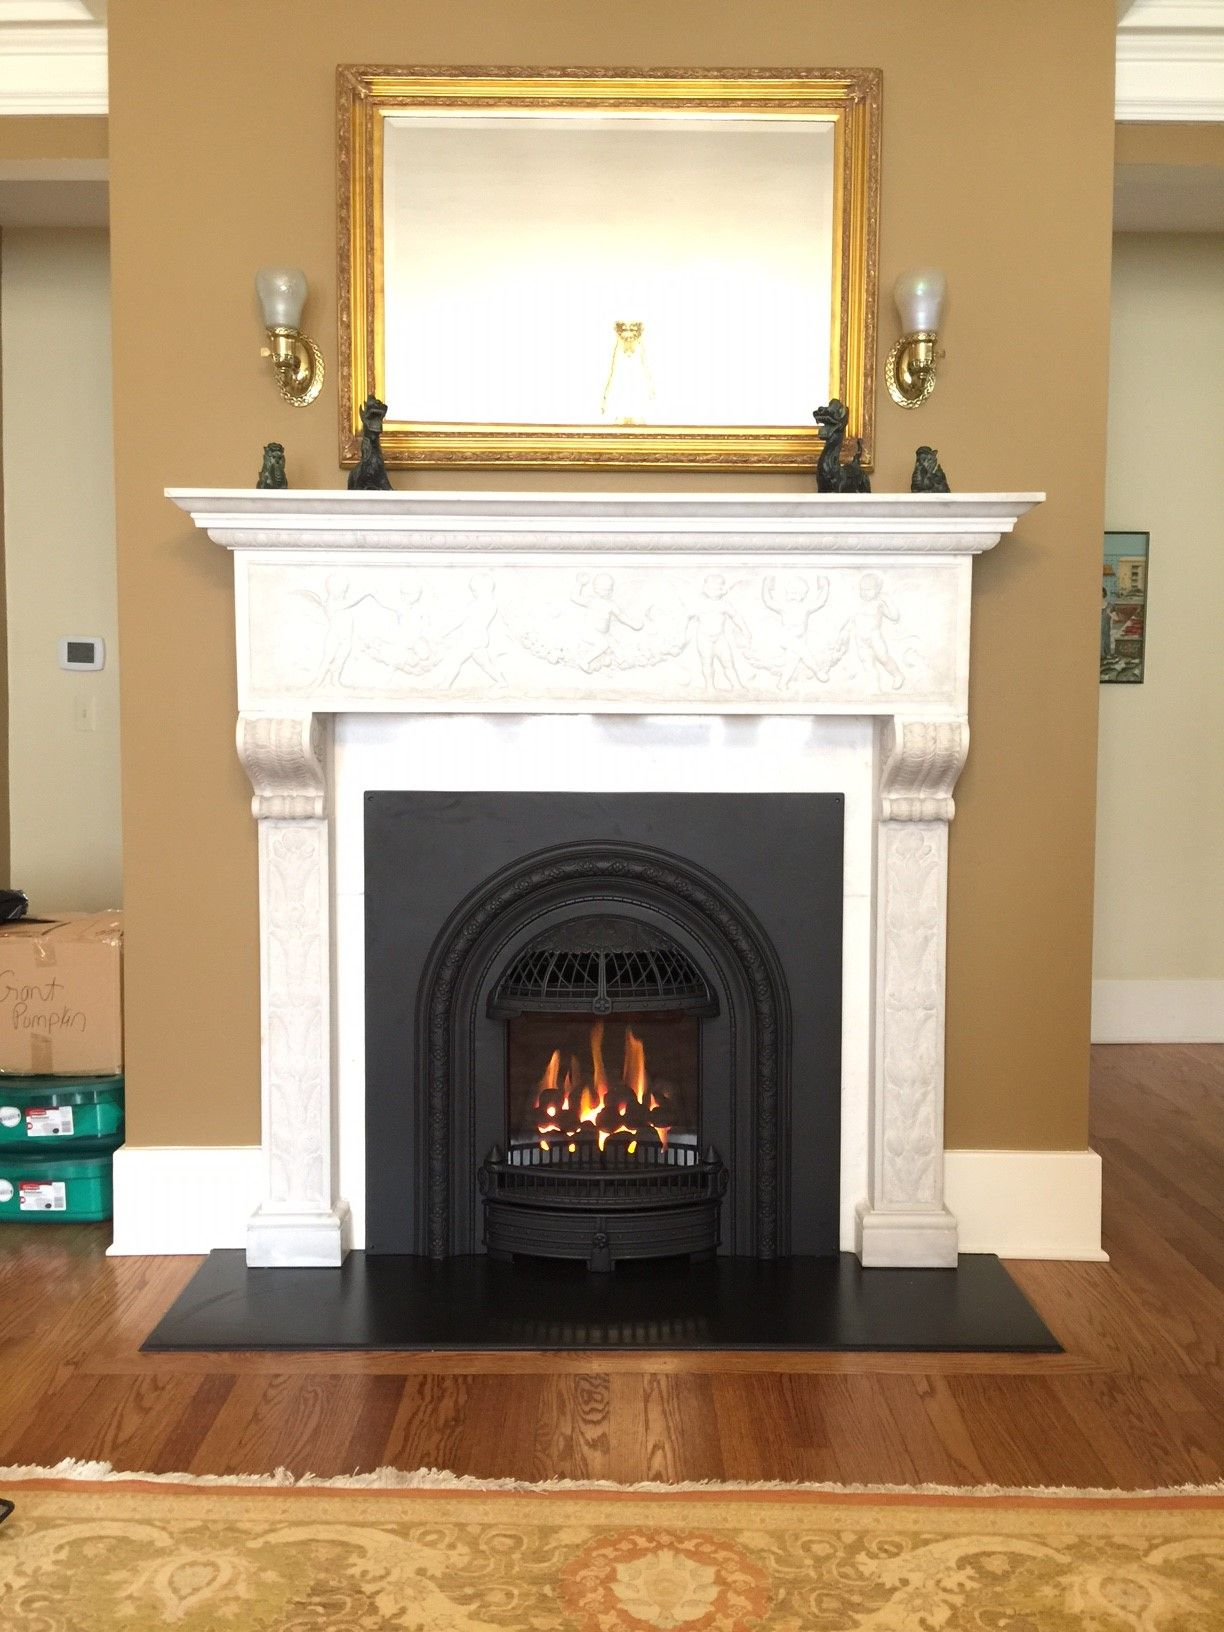 Valor 534ILN Horizon Log Fire Gas Direct Vent Fireplace or